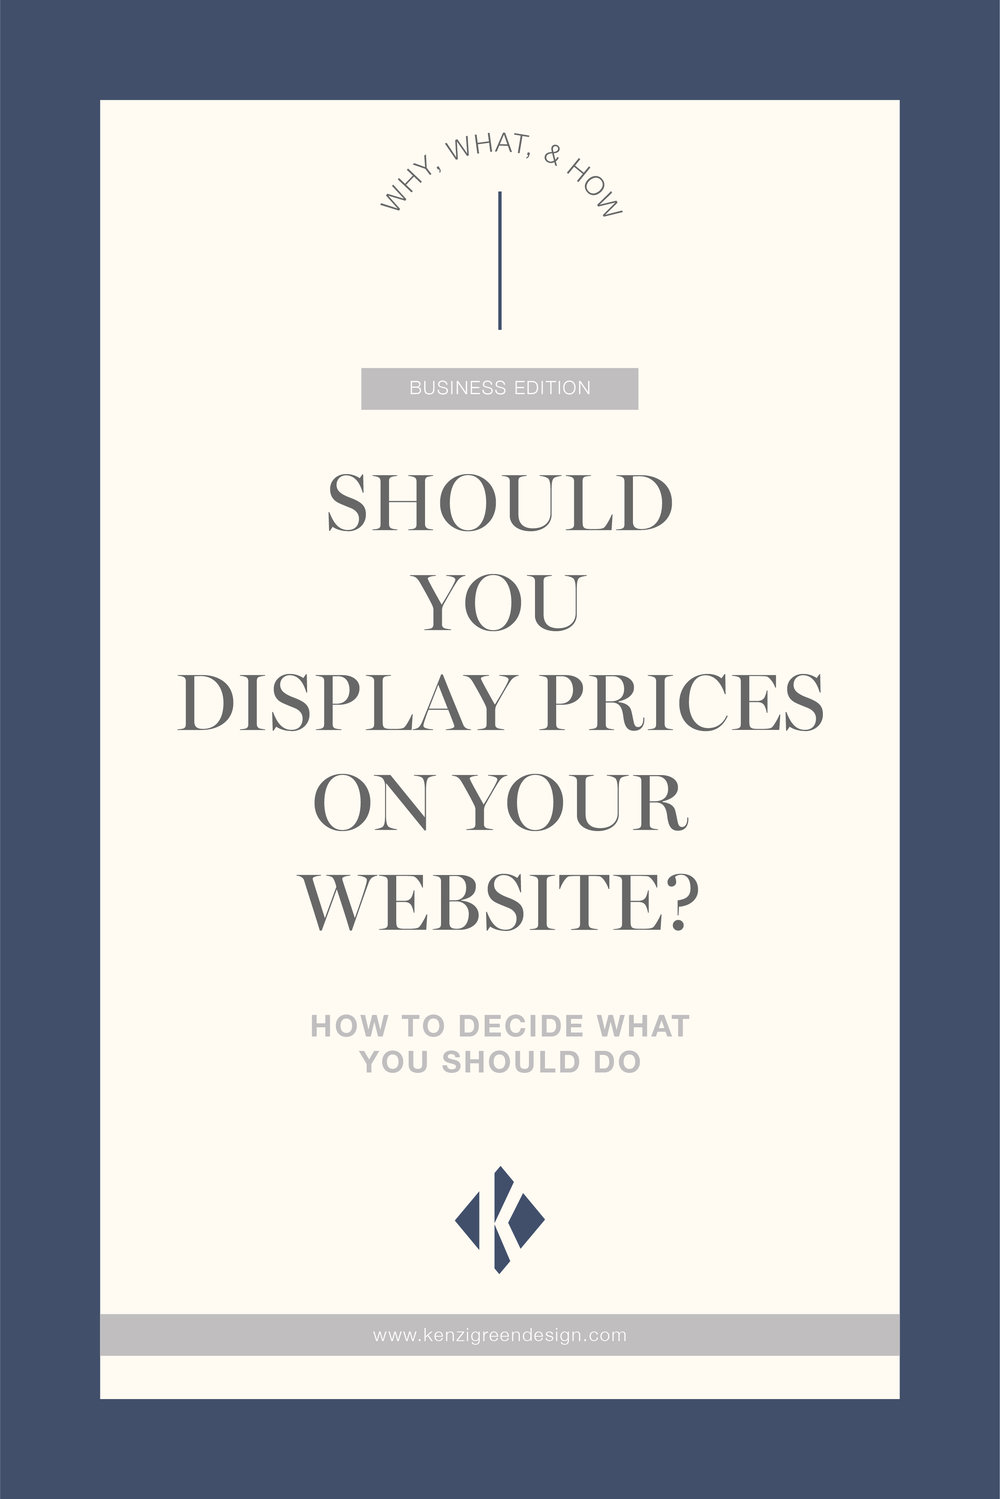 Should you display prices on your website? How to decide what you should do. #websitetips #businesstips #biztips